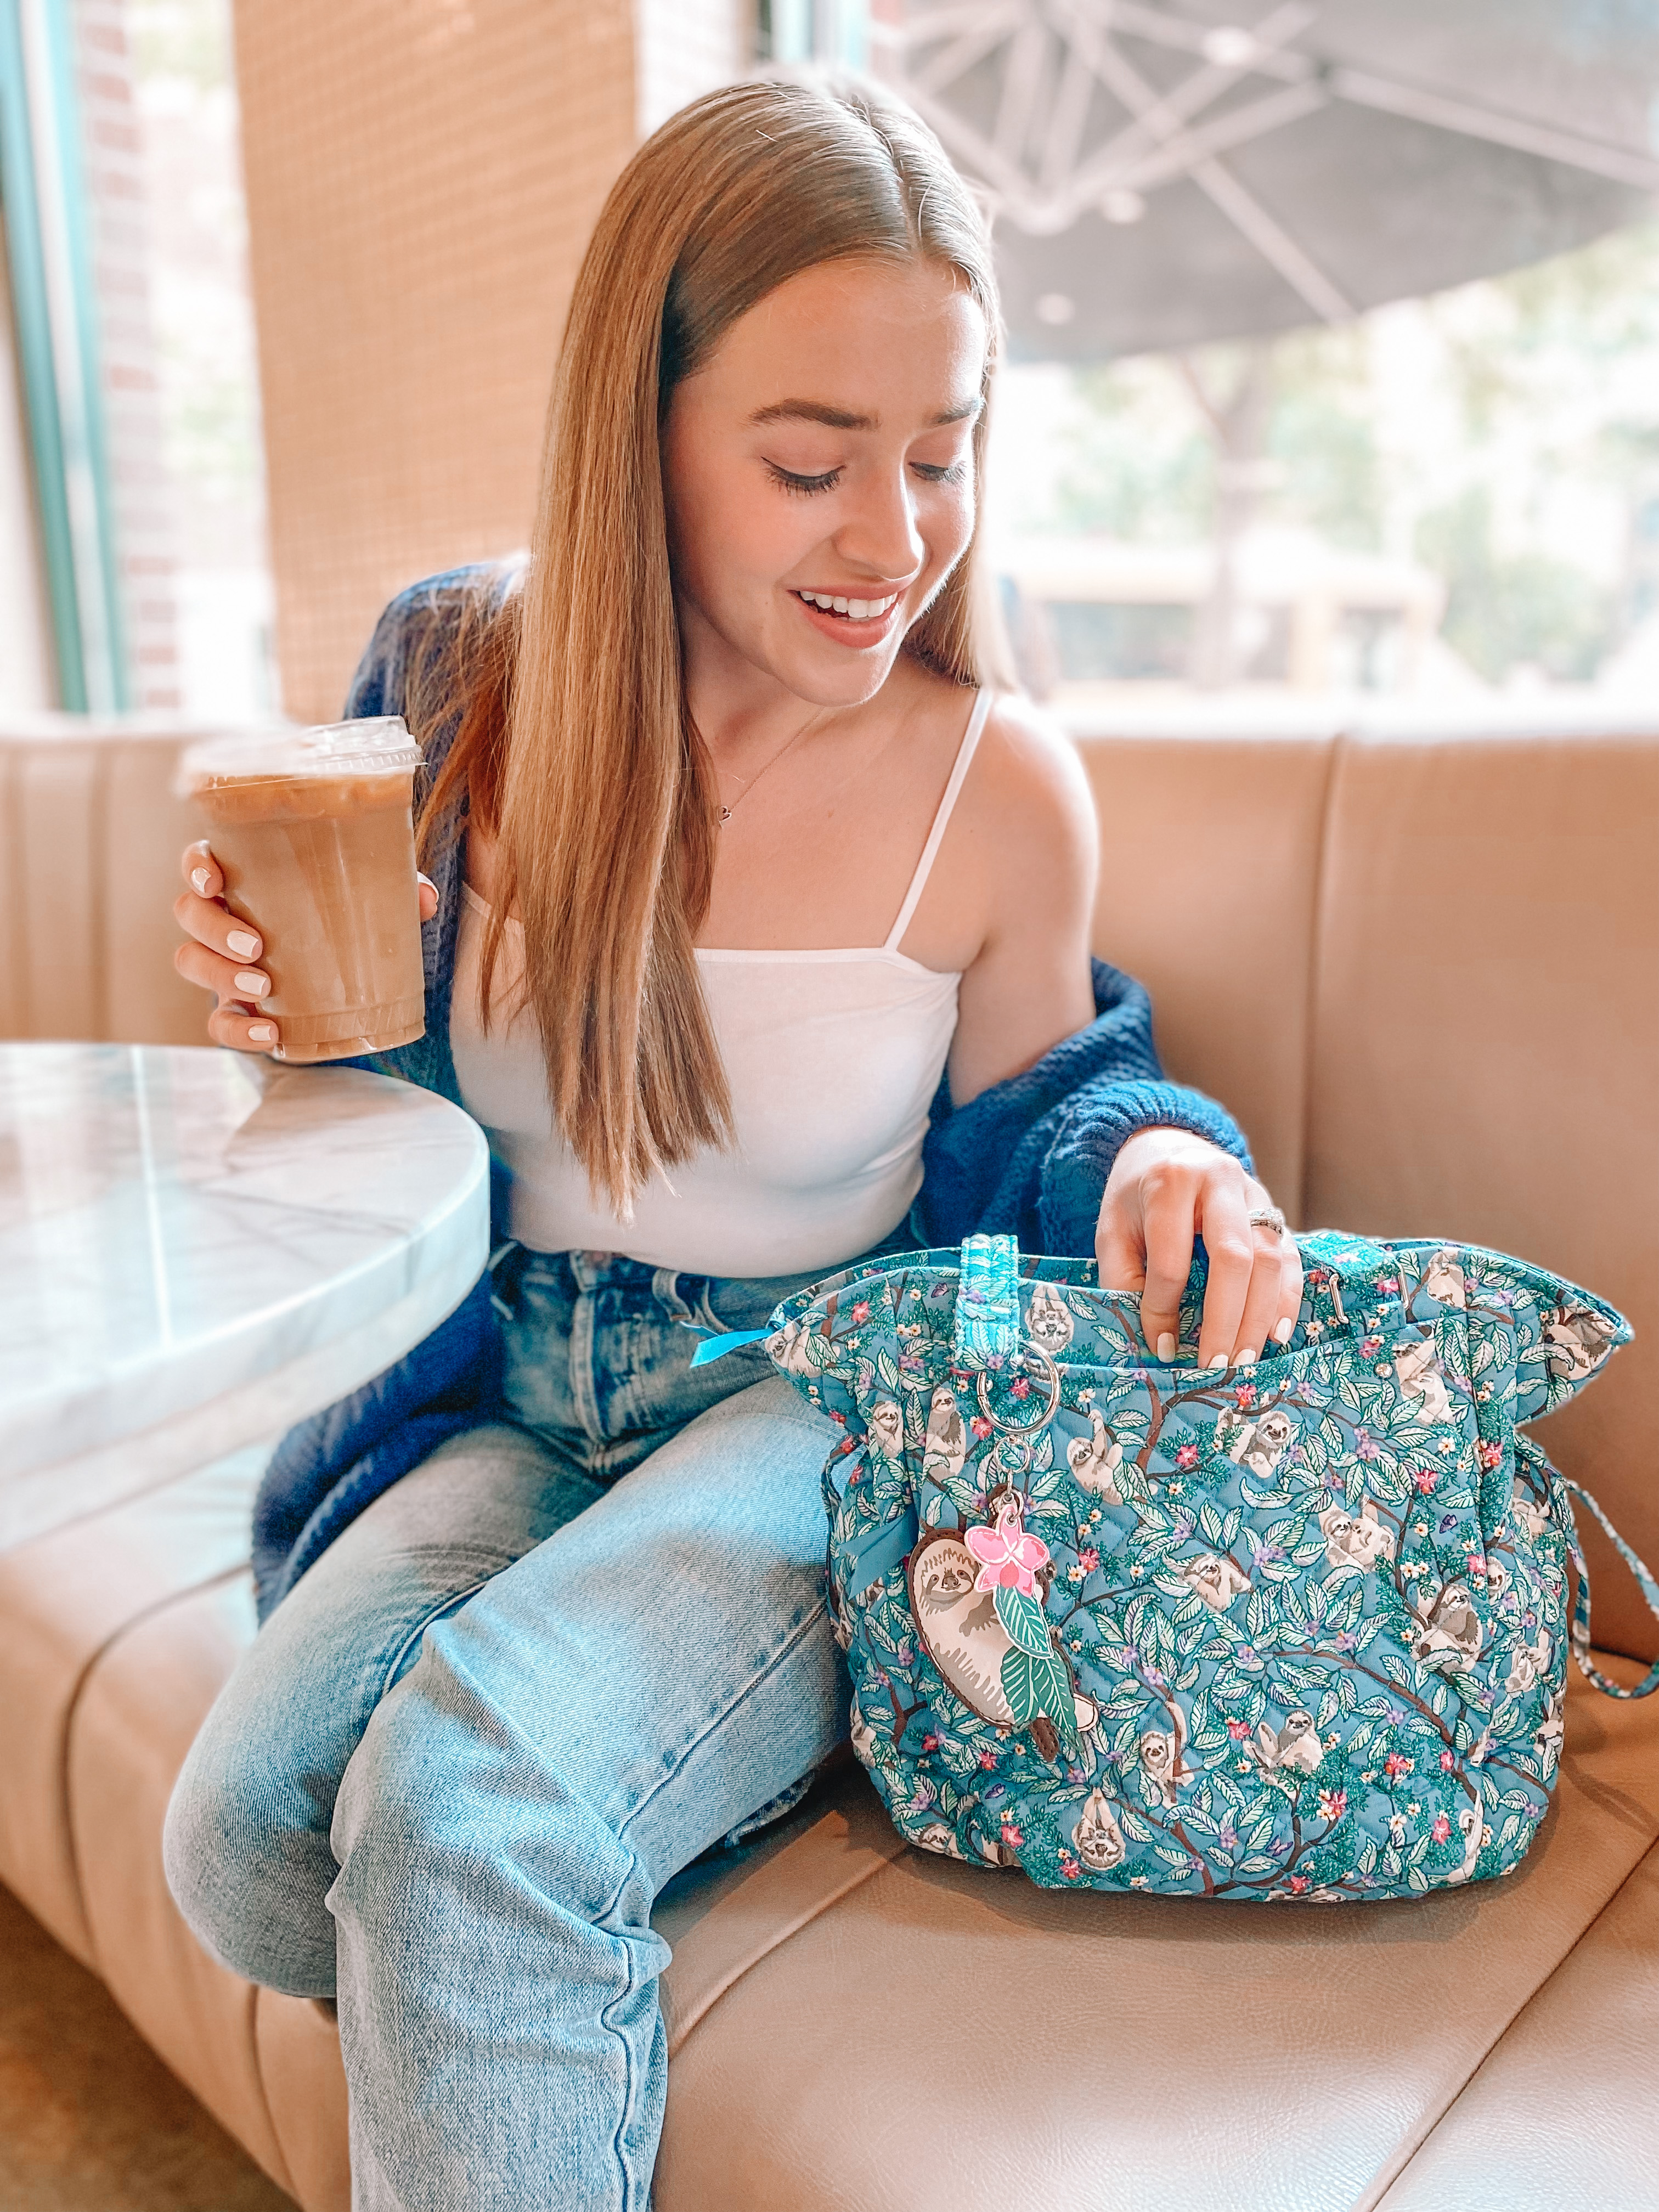 girl looks in sloth purse in coffee shop